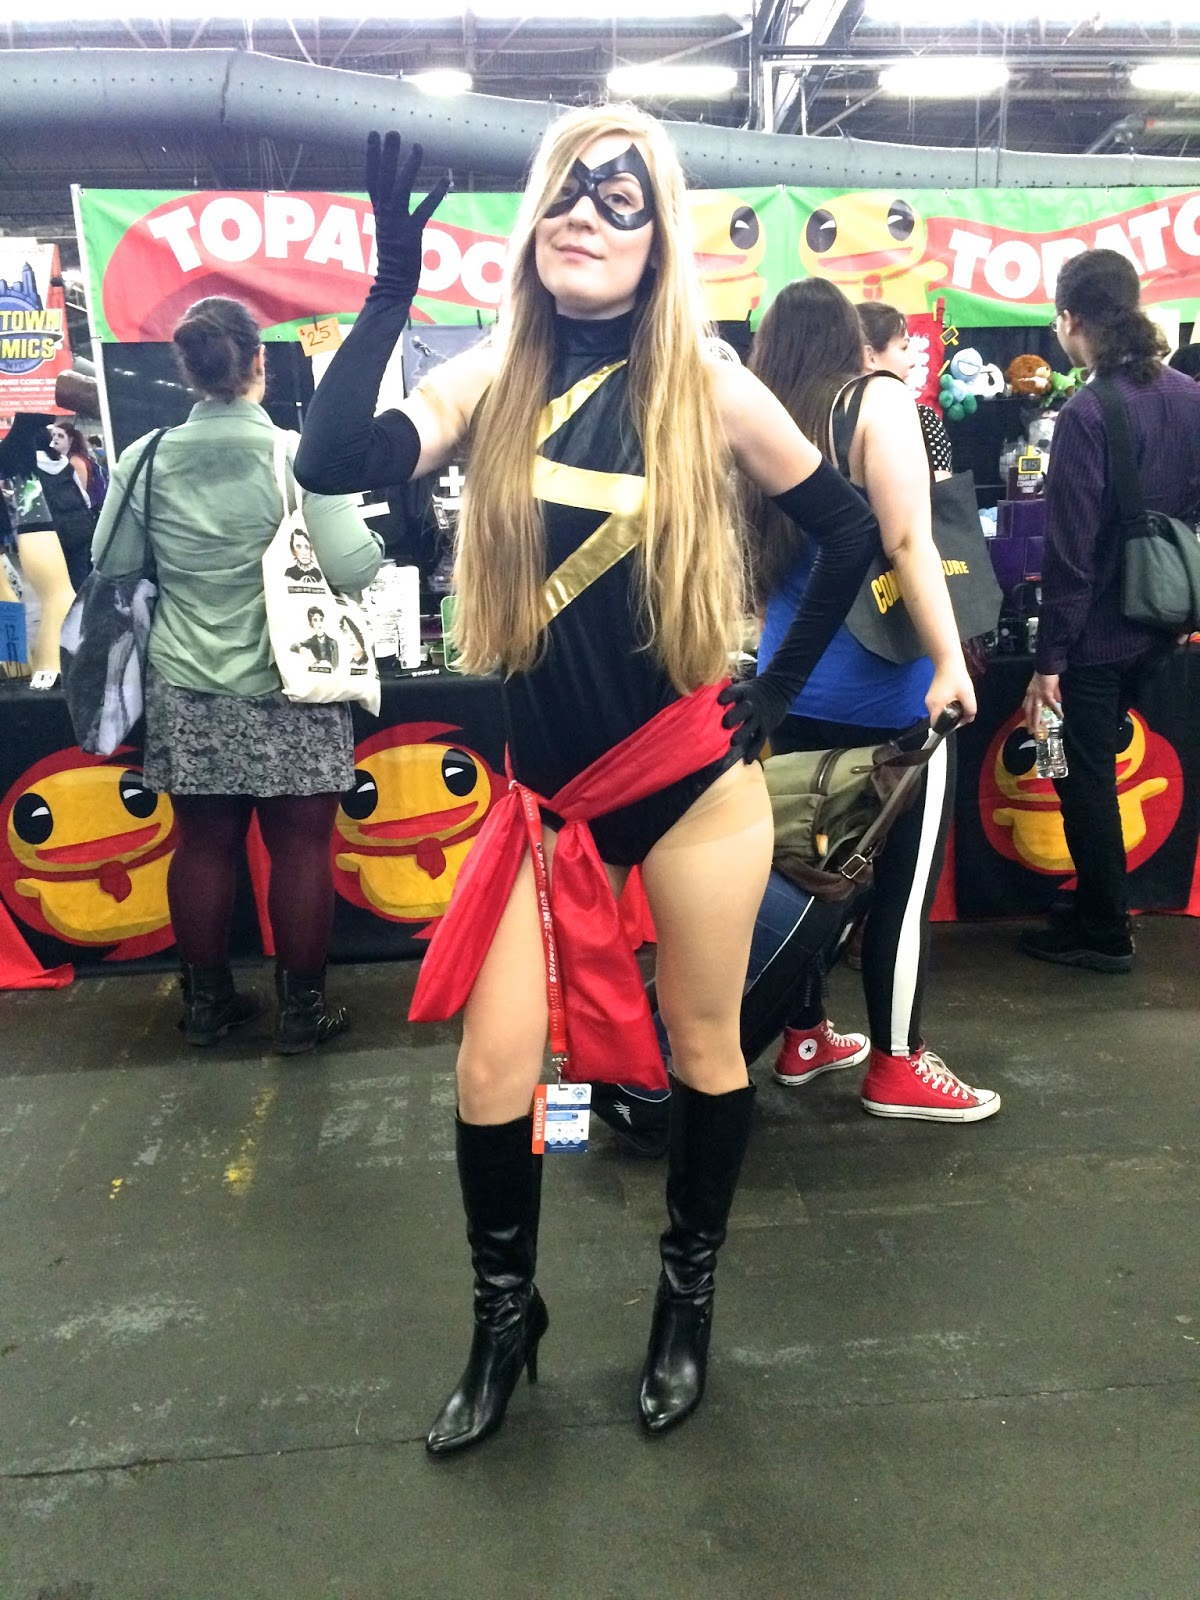 Ms. Marvel Special Edition NYC Carol Danvers cosplay